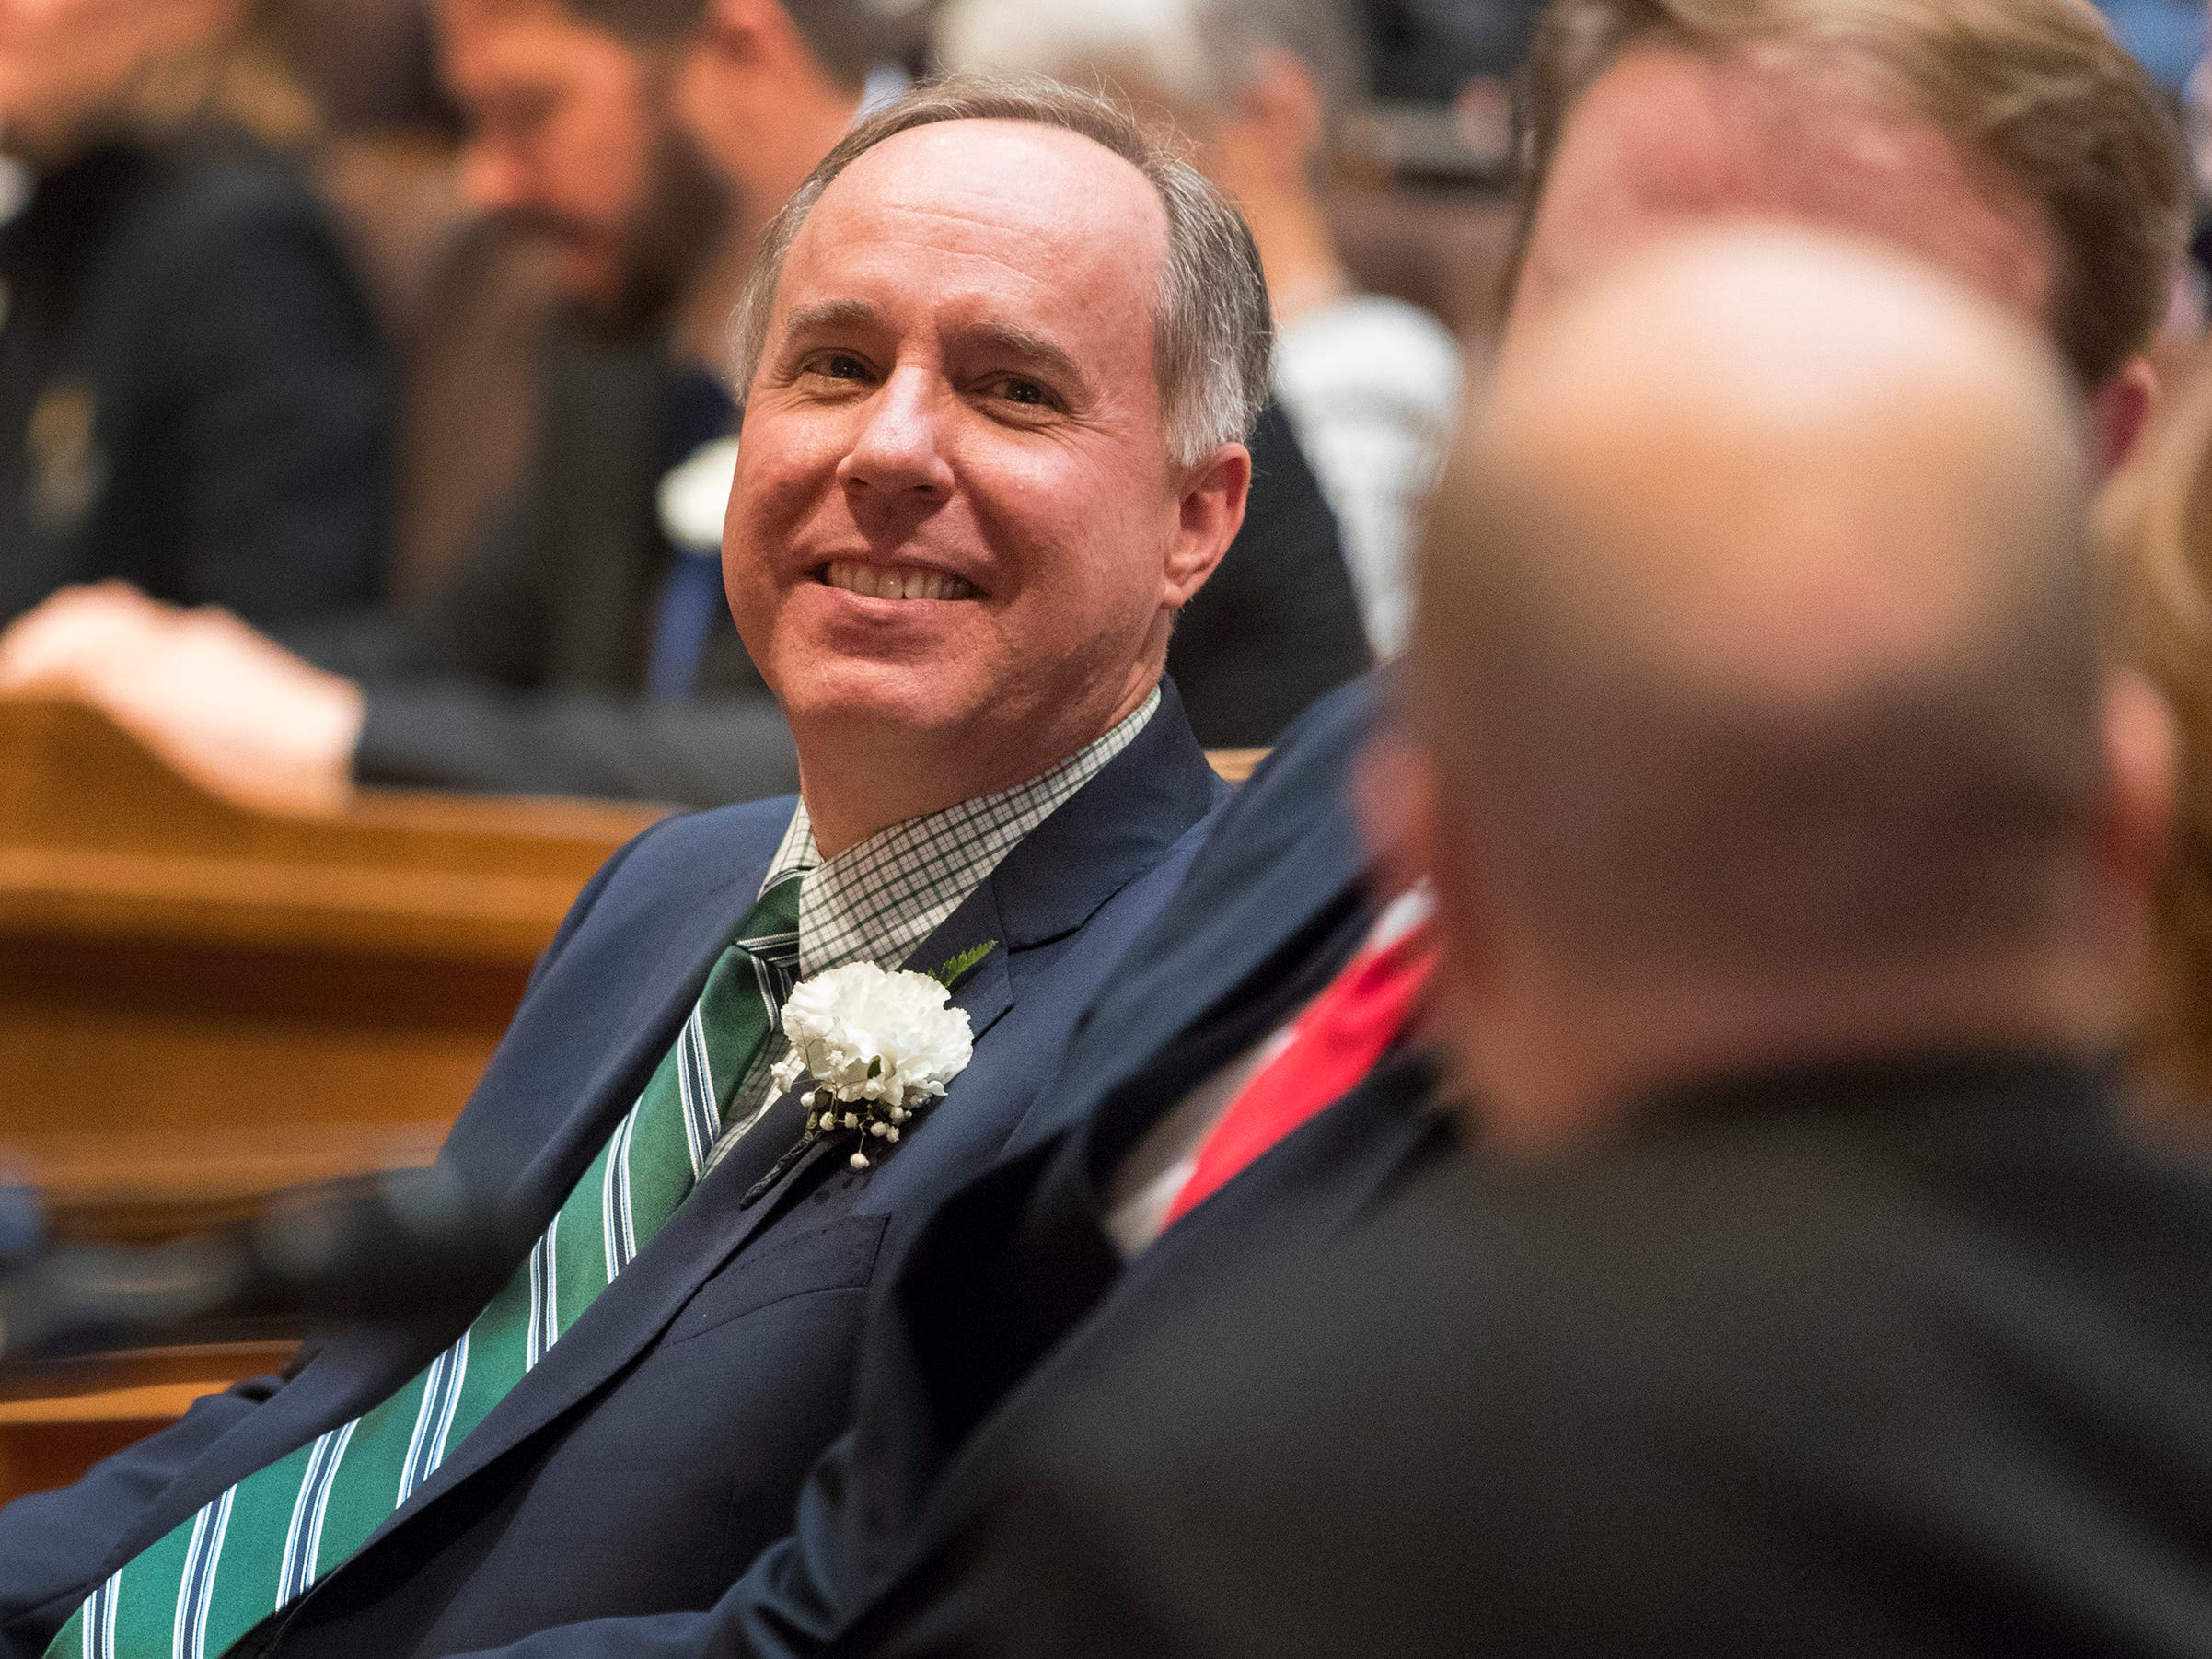 Assembly Speaker Robin Vos is shown during the swearing-in ceremony for Assembly members at the Capitol in Madison, Wis.